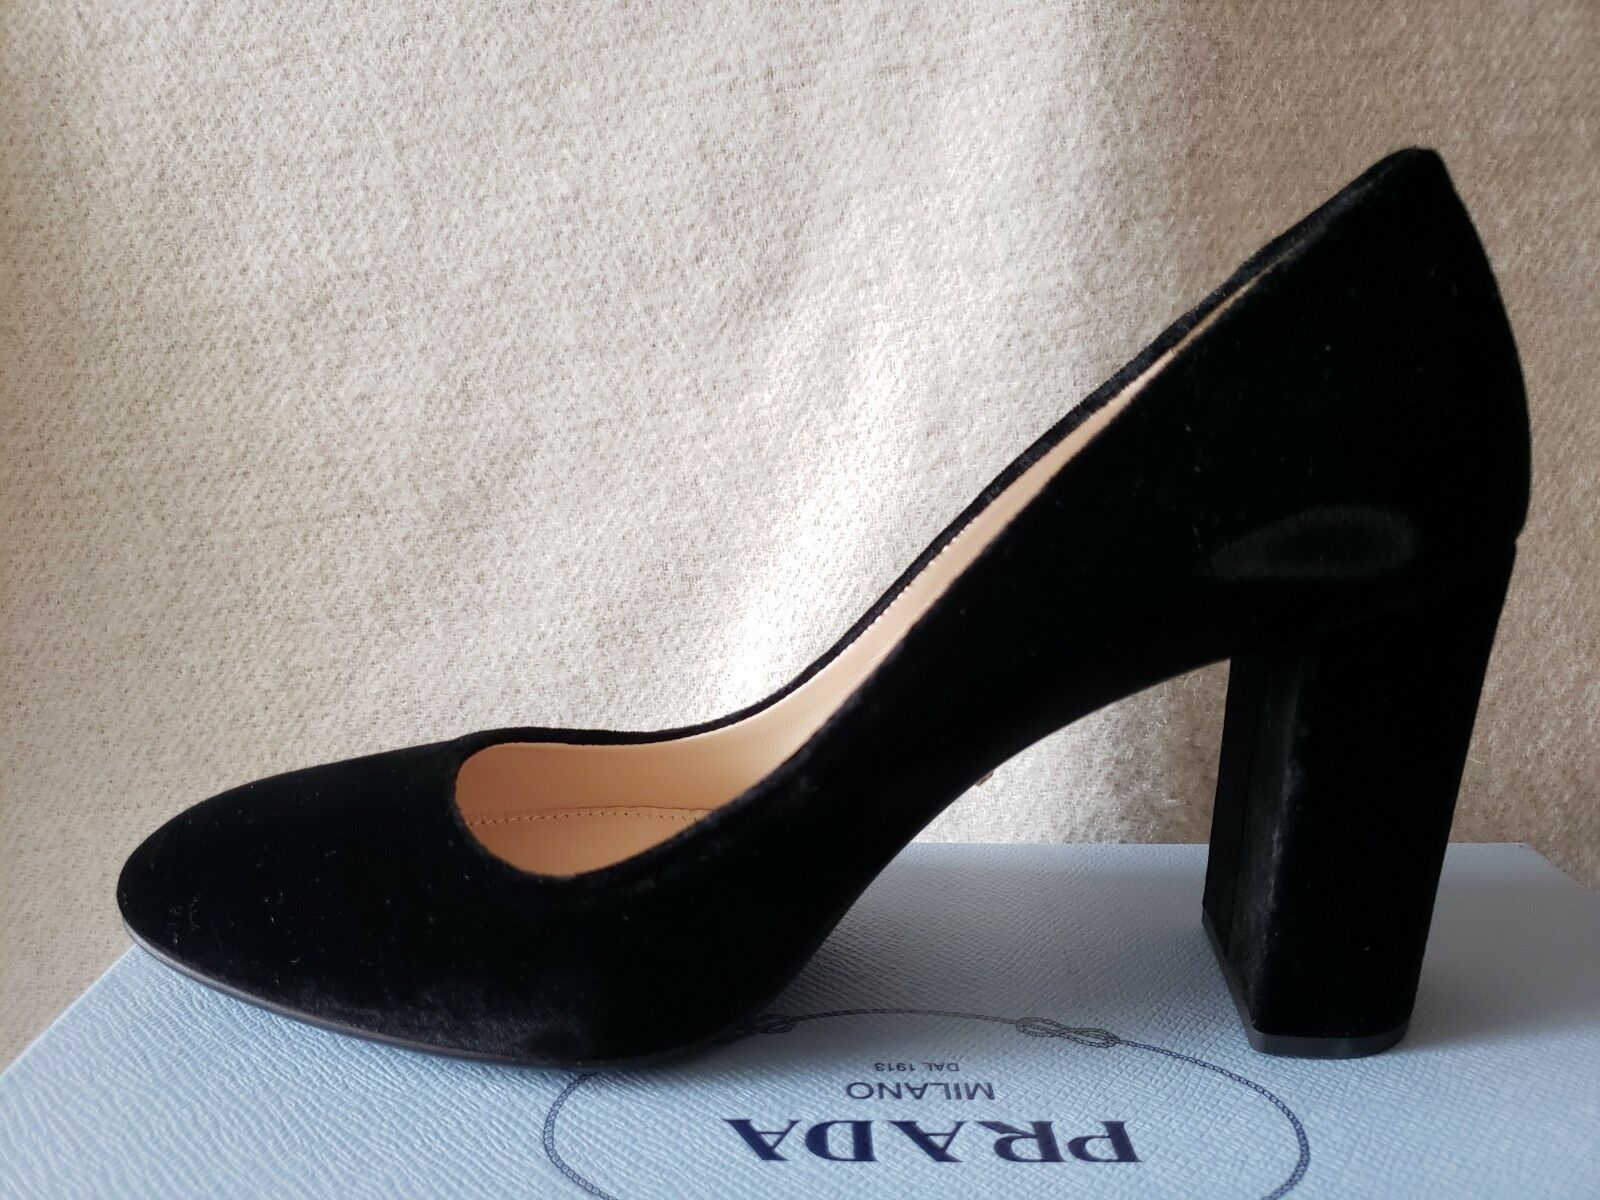 NIB Auth Prada Prada Prada 39 9 Classic Almond Toe Pumps Block Heels Black Velvet 80mm shoes aee20a